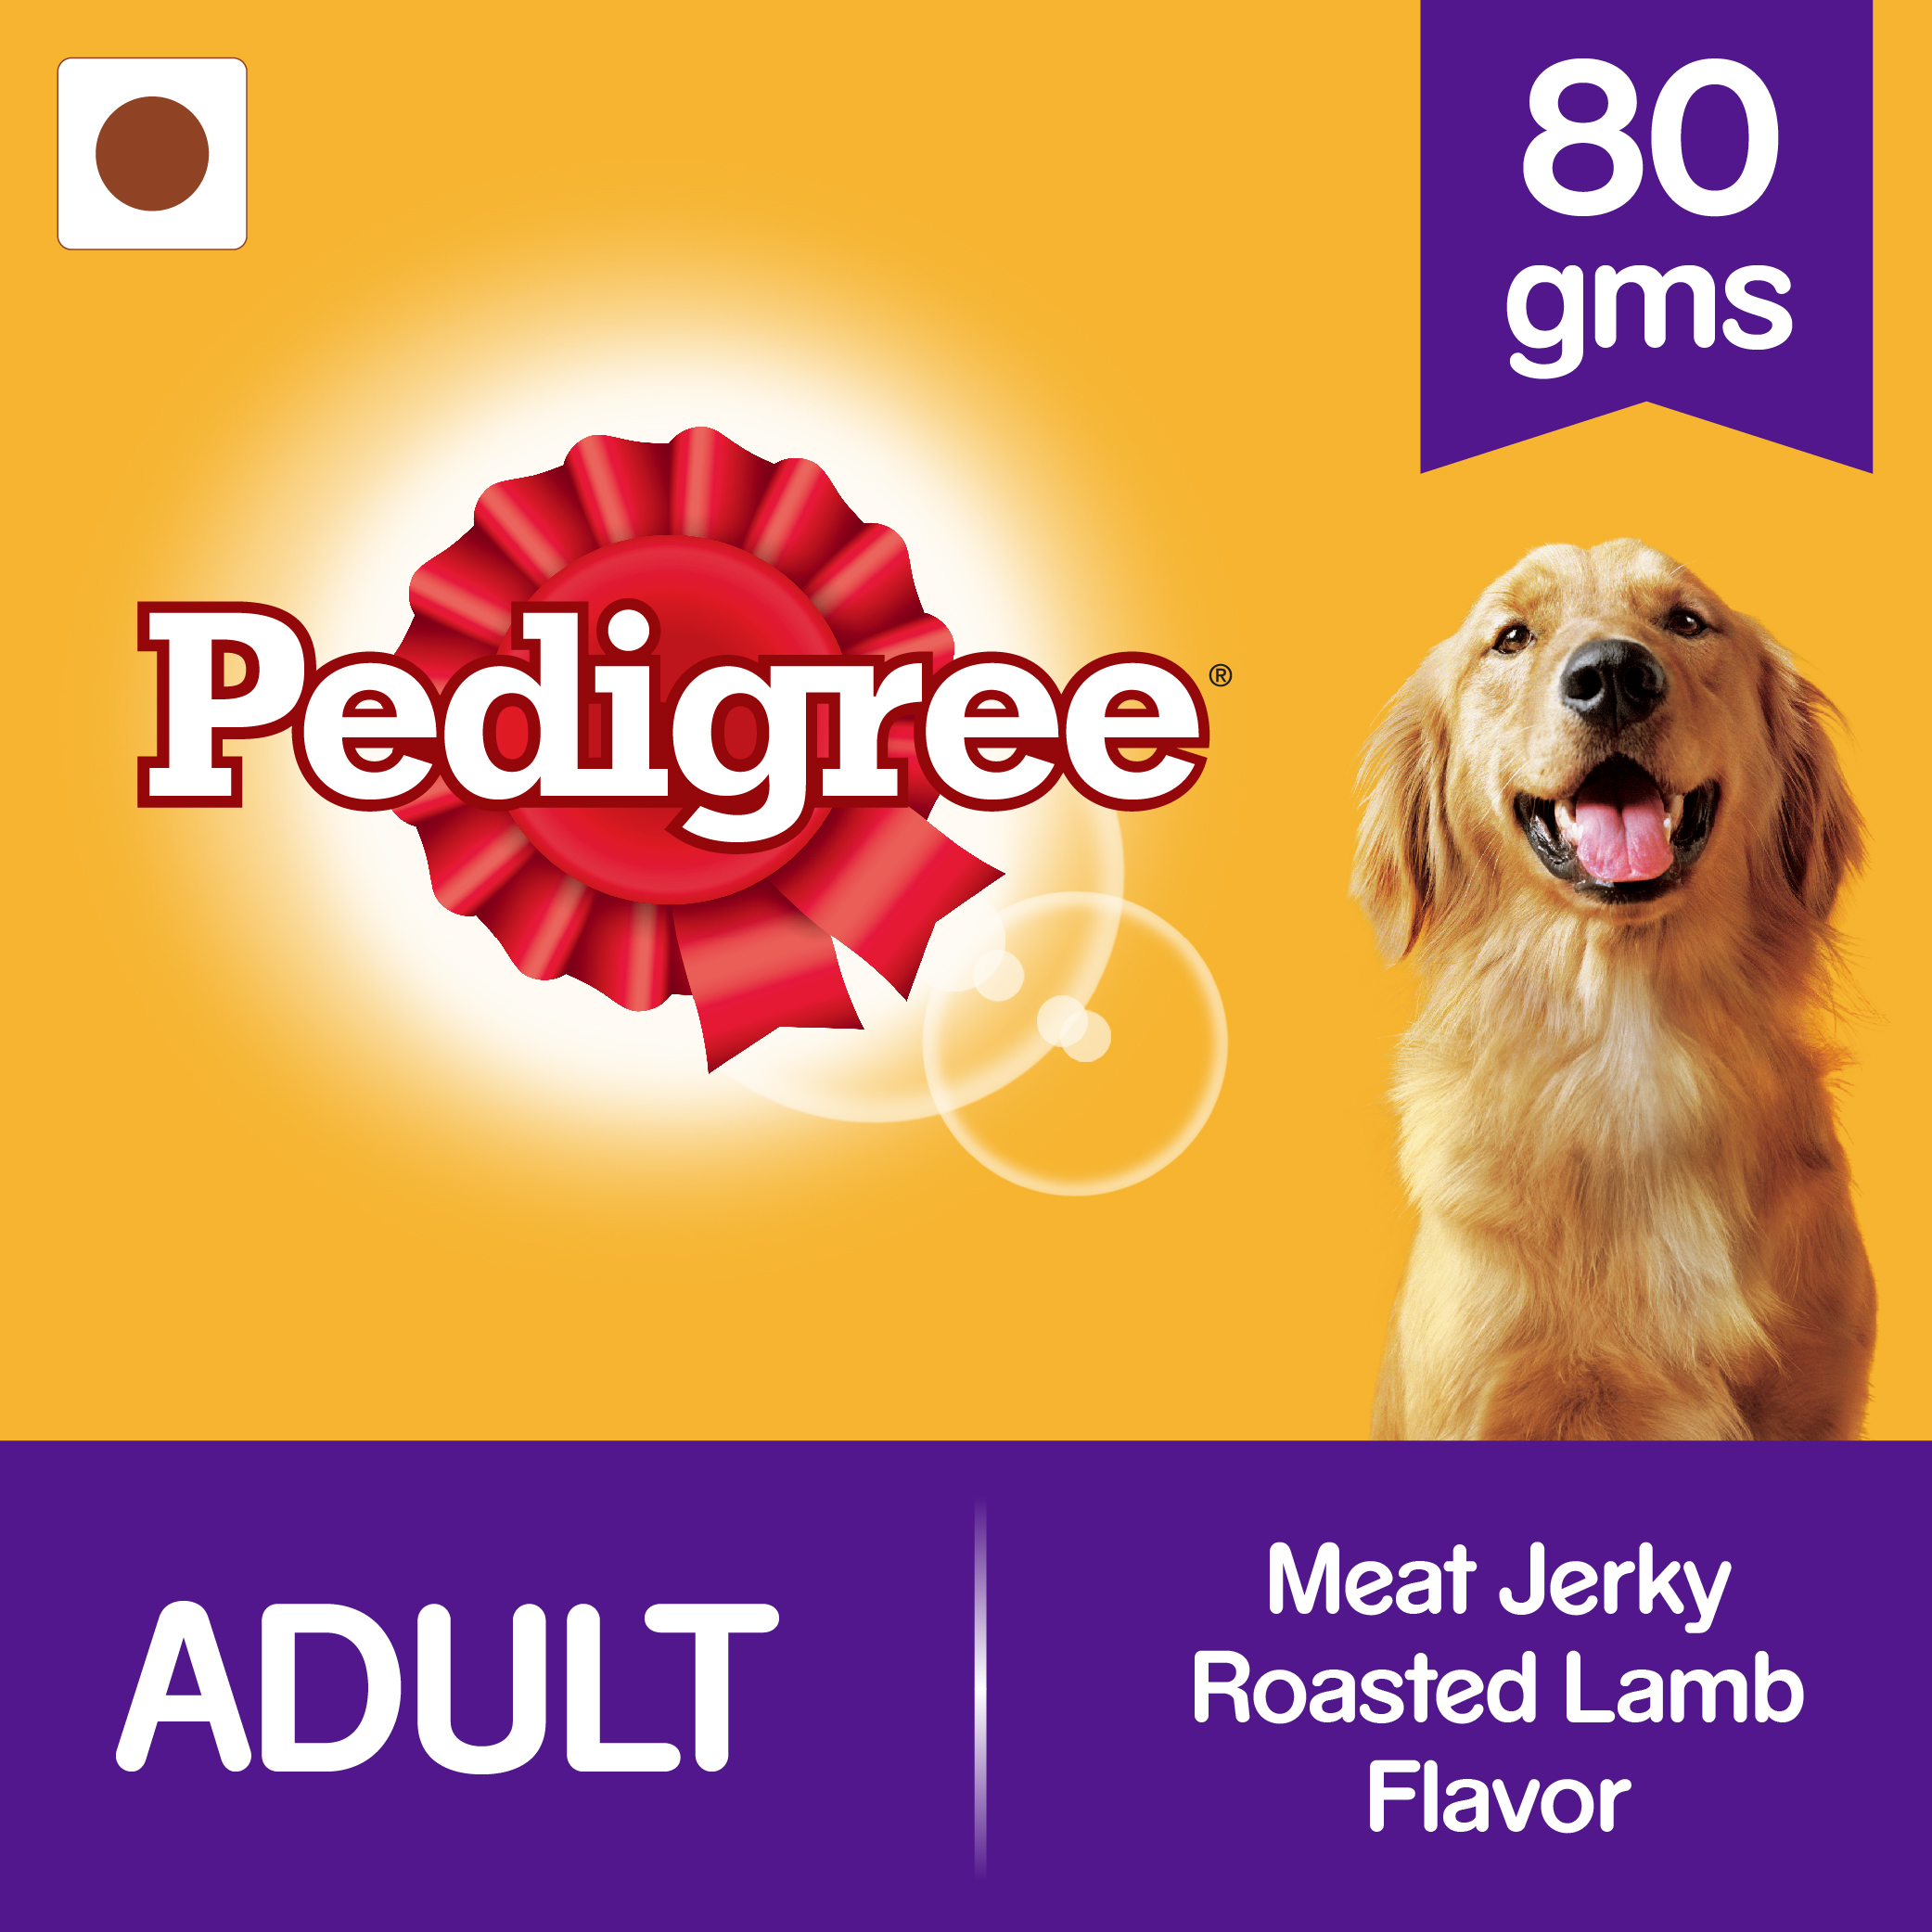 Pedigree Meat Jerky Roasted Lamb Flavor  - 80 gm (Pack of 12)